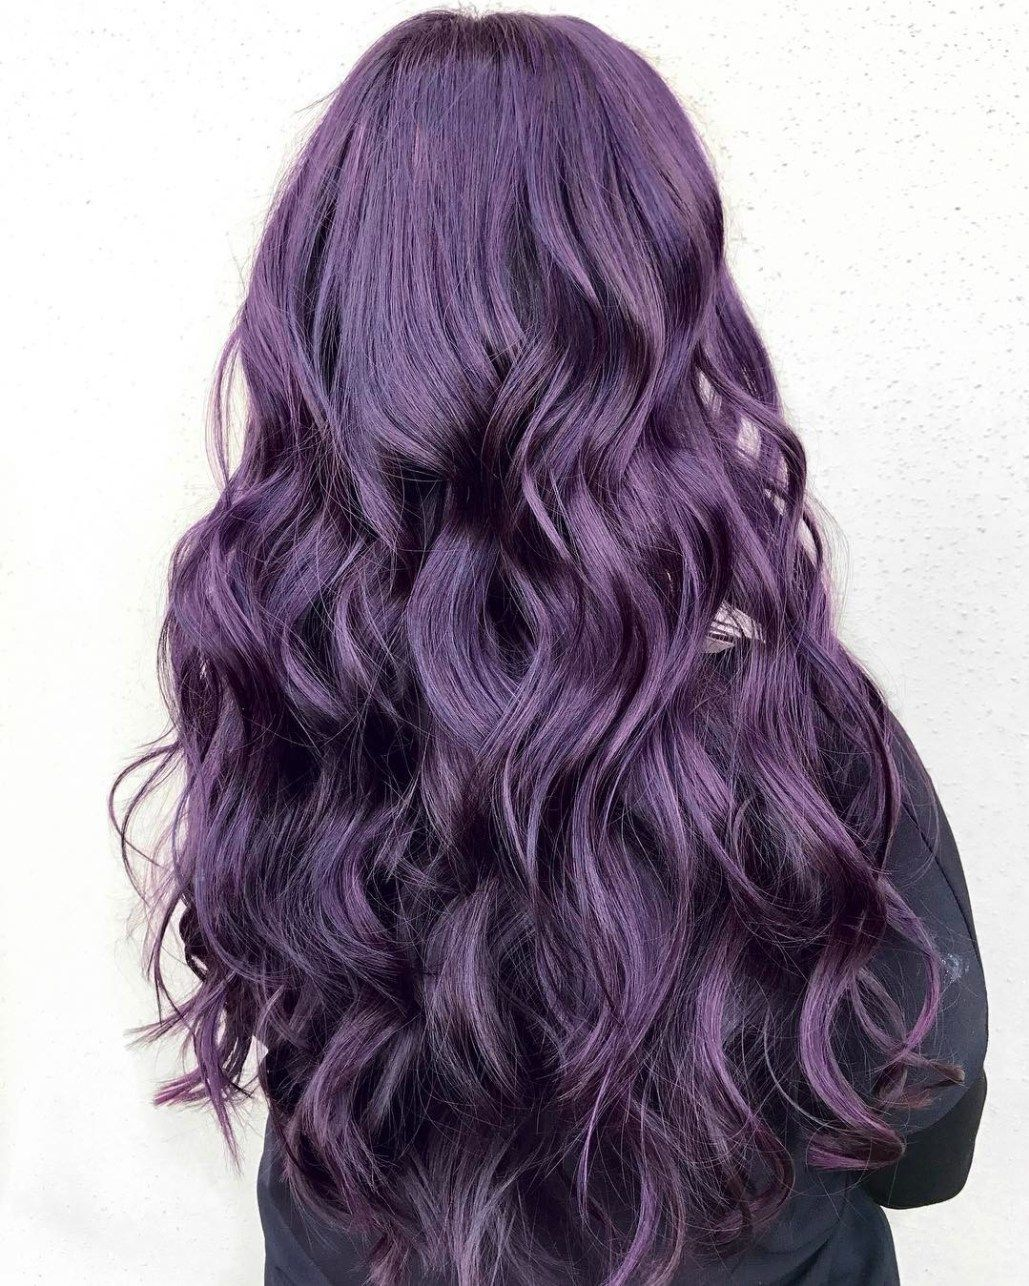 20 Plum Hair Color Ideas For Your Next Makeover Plum Hair Colors